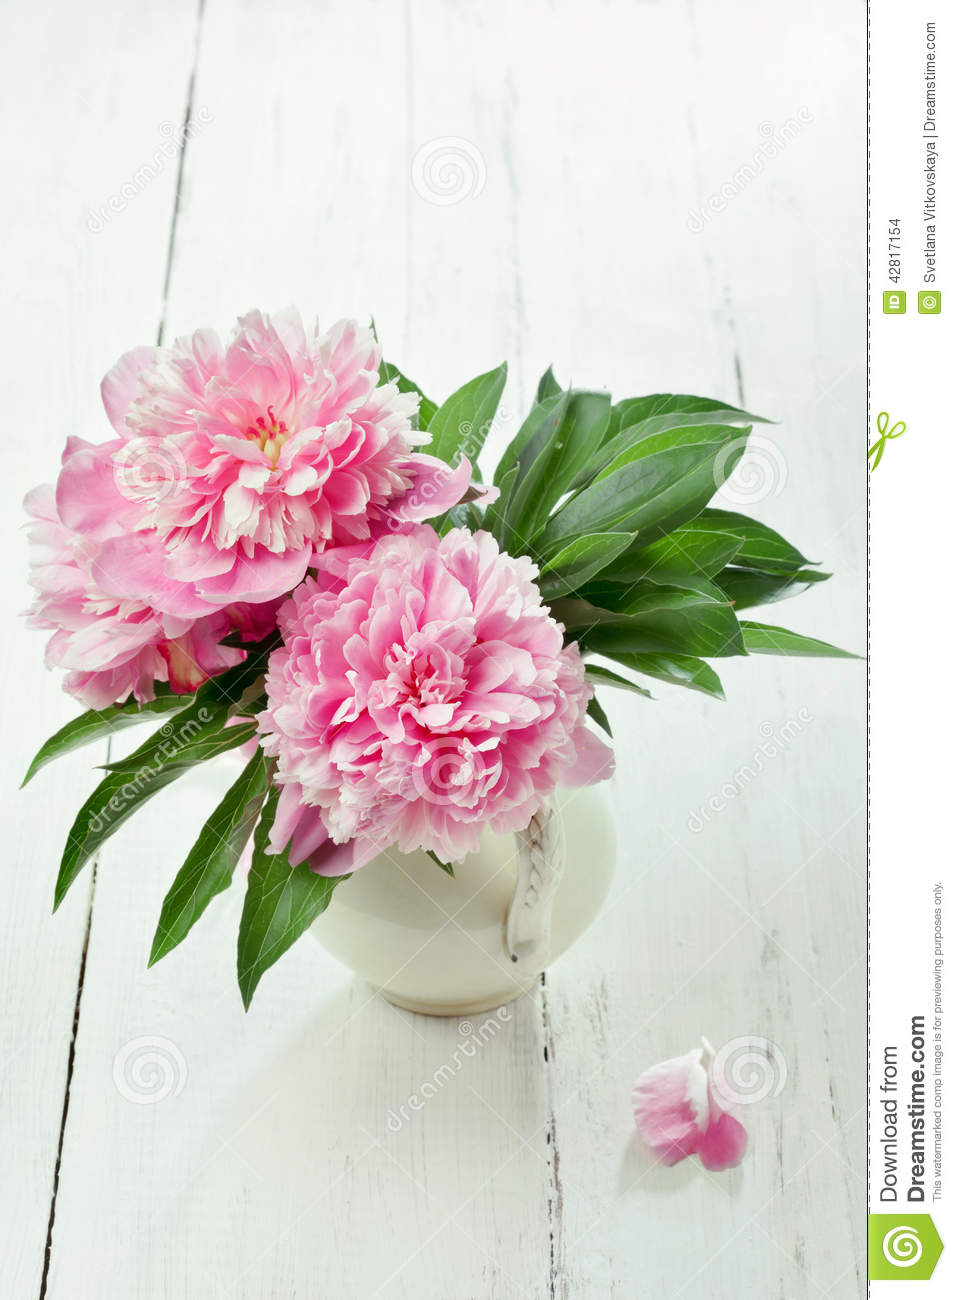 Pink Peonies In Retro Vase On Wooden Table Stock Photo